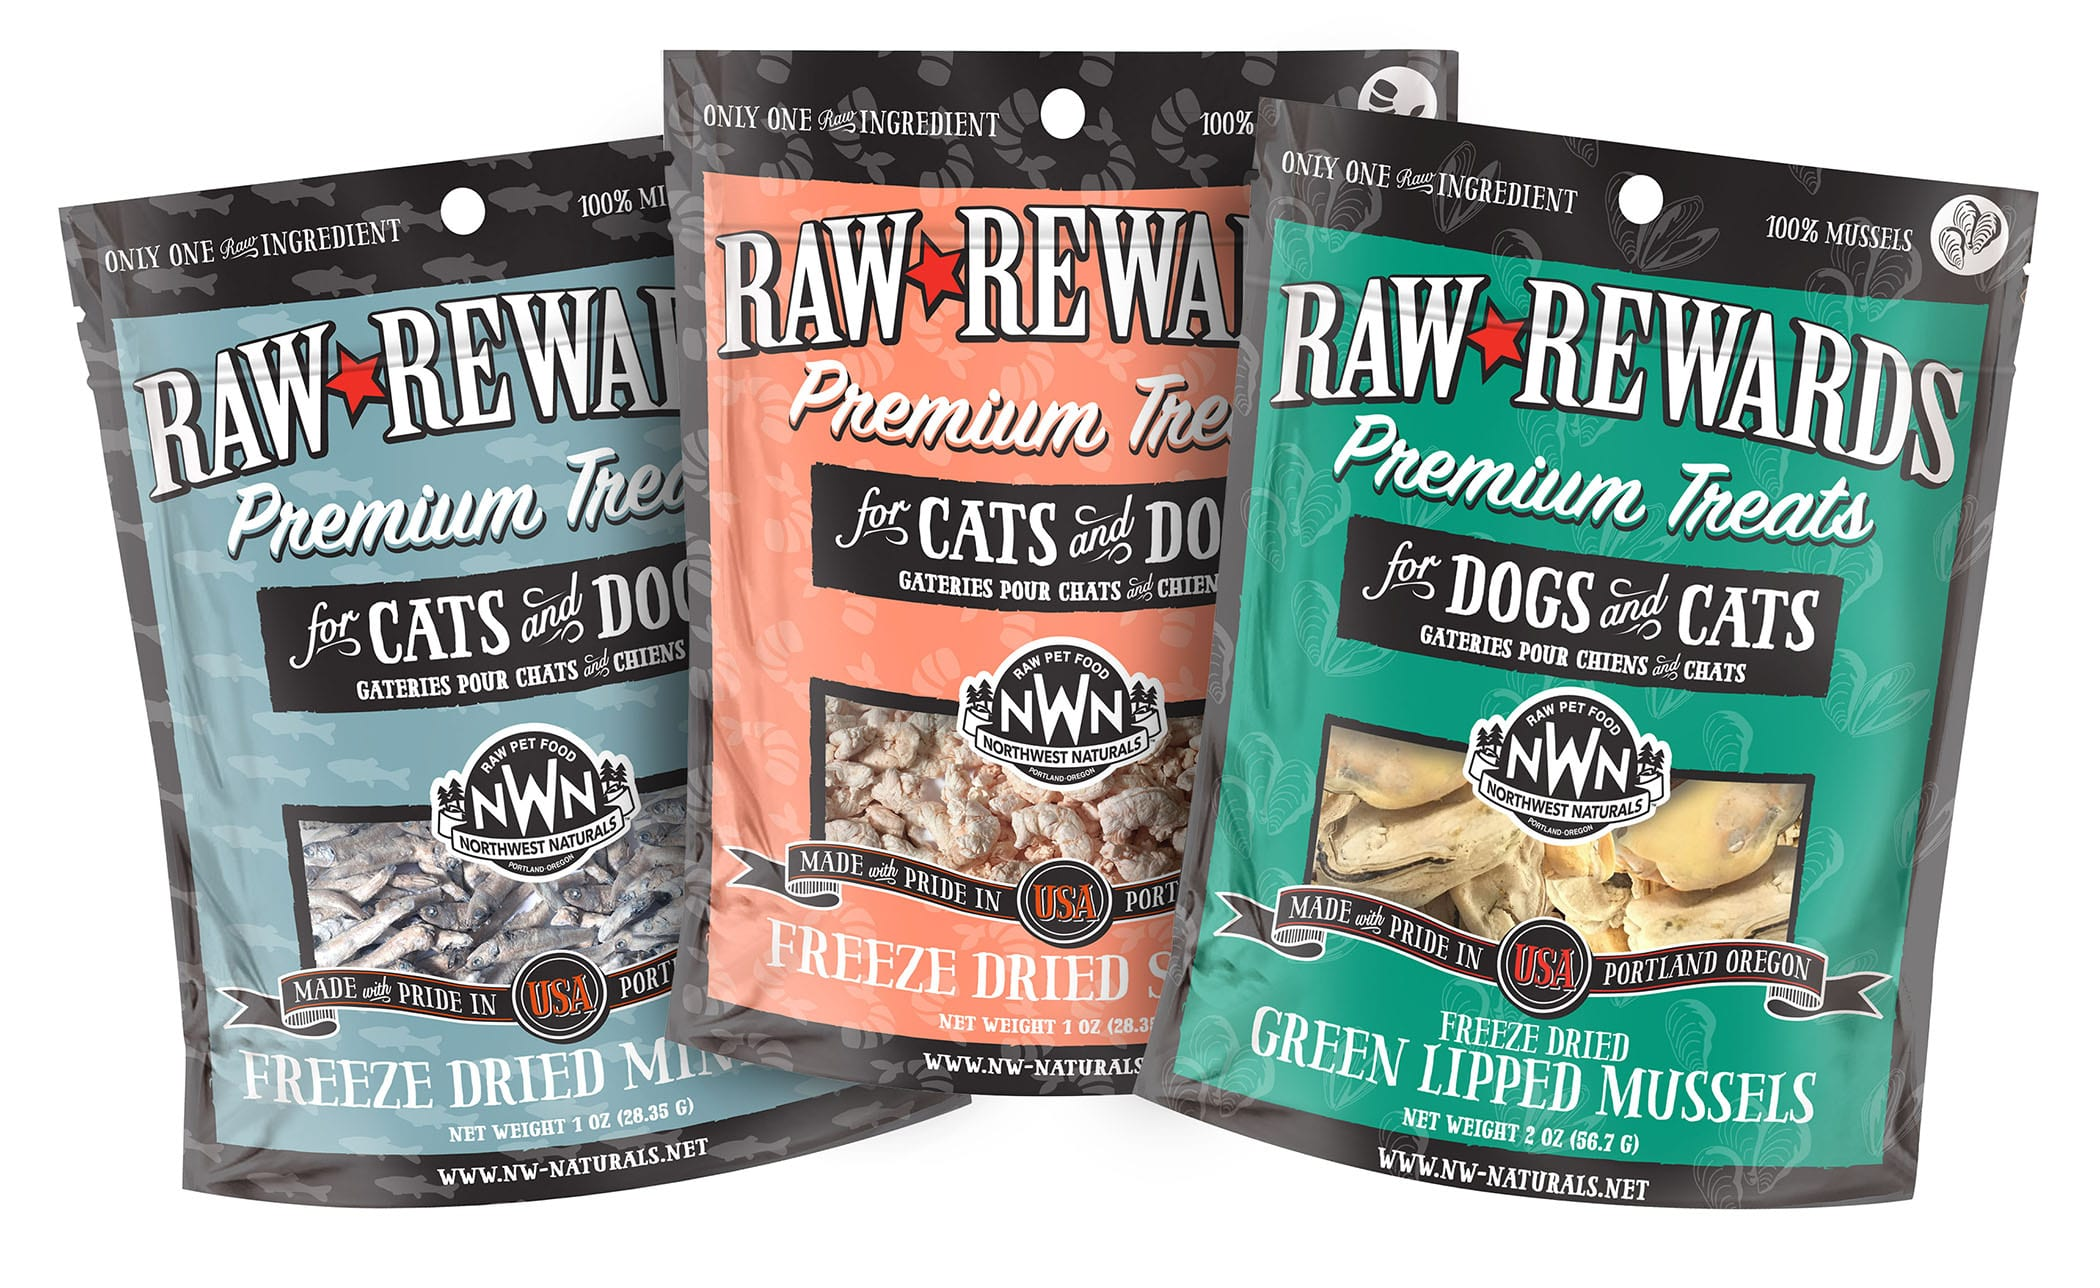 New Flavors of Raw Rewards Treats for Dogs and Cats from Northwest Naturals - Green Lipped Mussels, Shrimp & Minnows